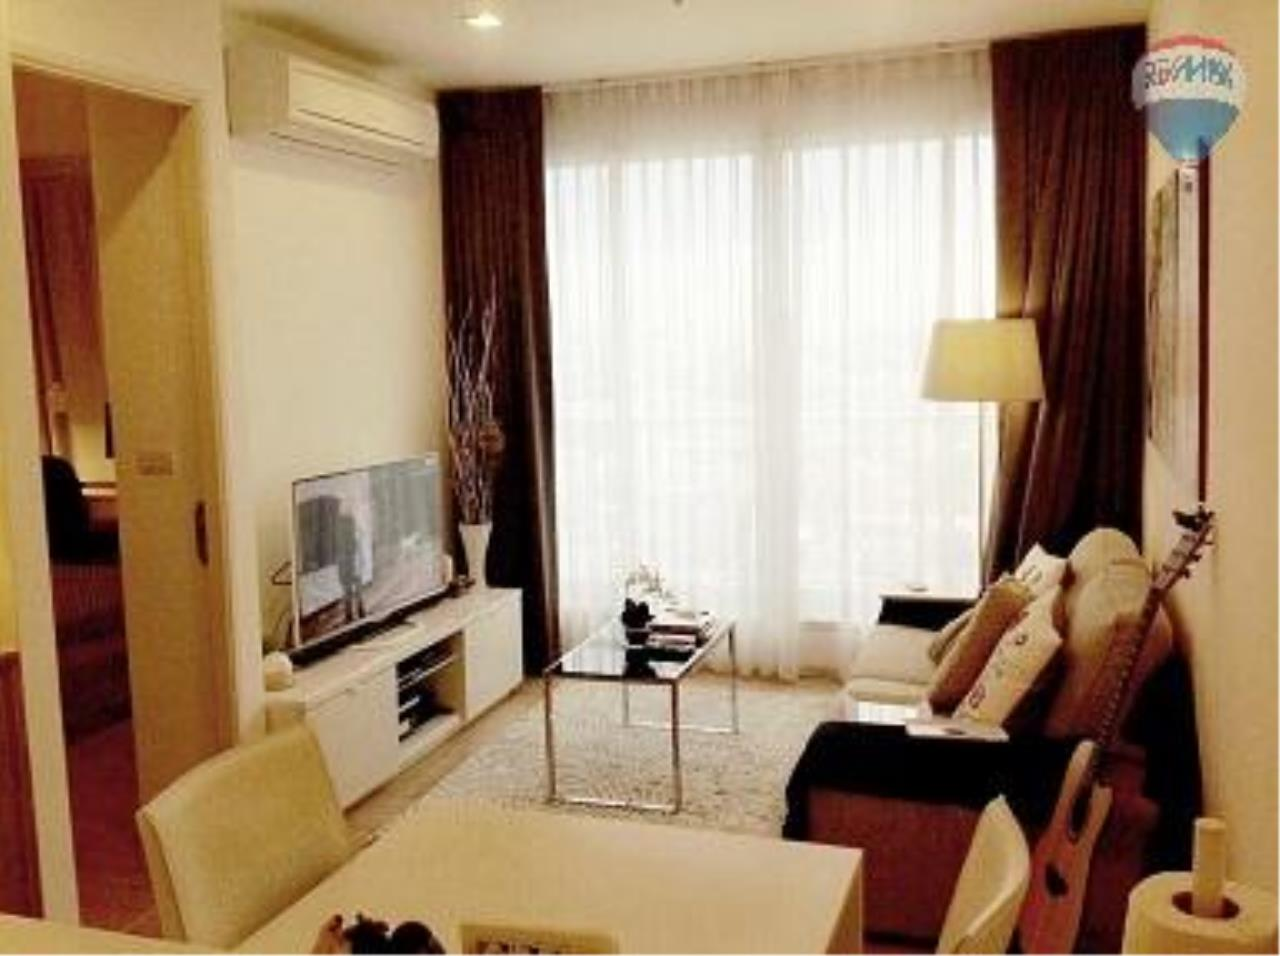 RE/MAX Properties Agency's 1 bedroom 45 Sq.M. for renting 32,000 THB in Rhythm Sukhumvit 6